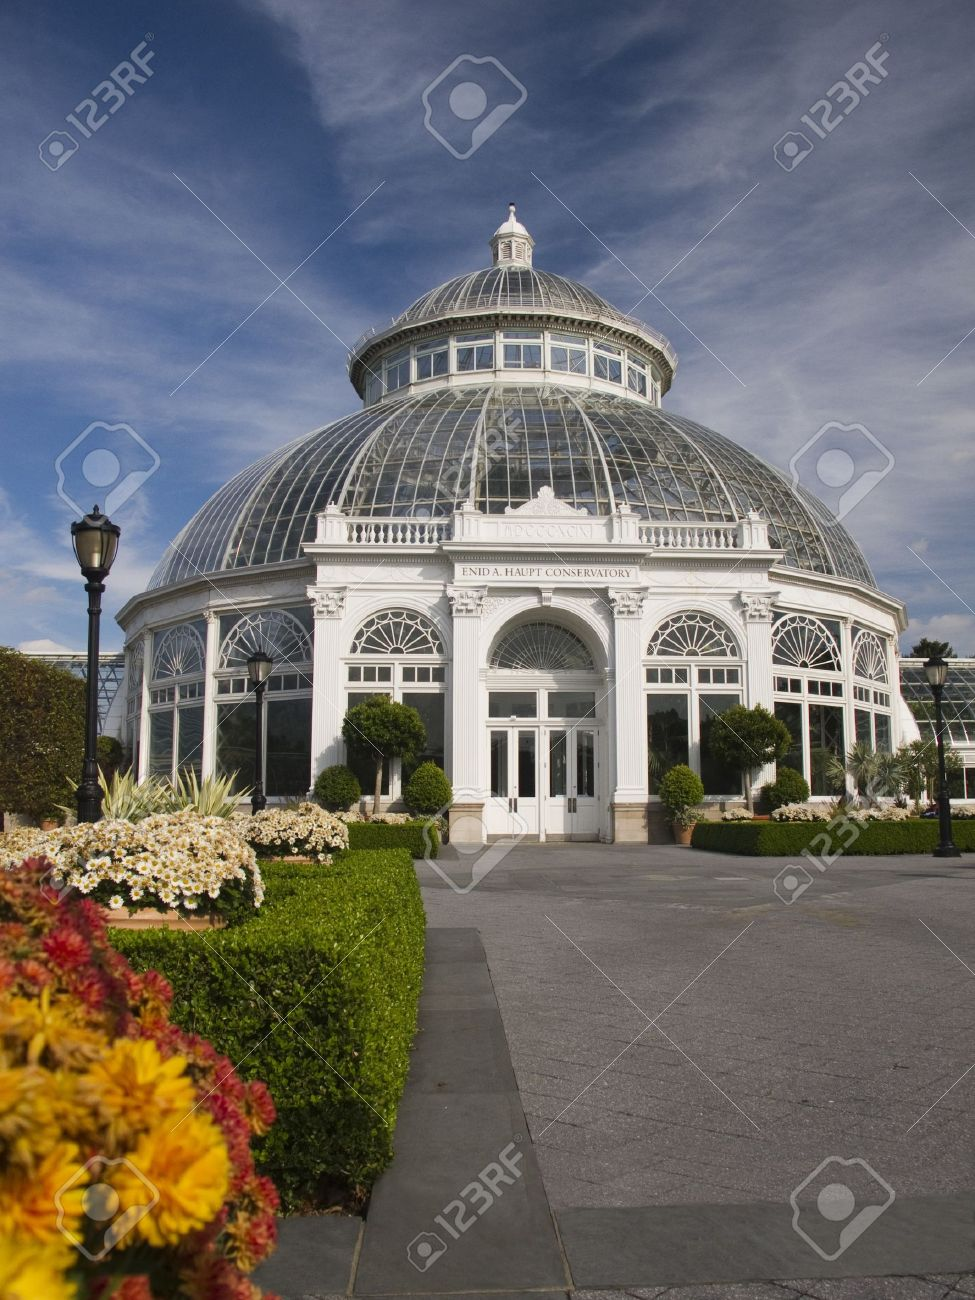 The Enid A. Haupt Conservatory At The New York Botanical Garden In The Bronx  Stock